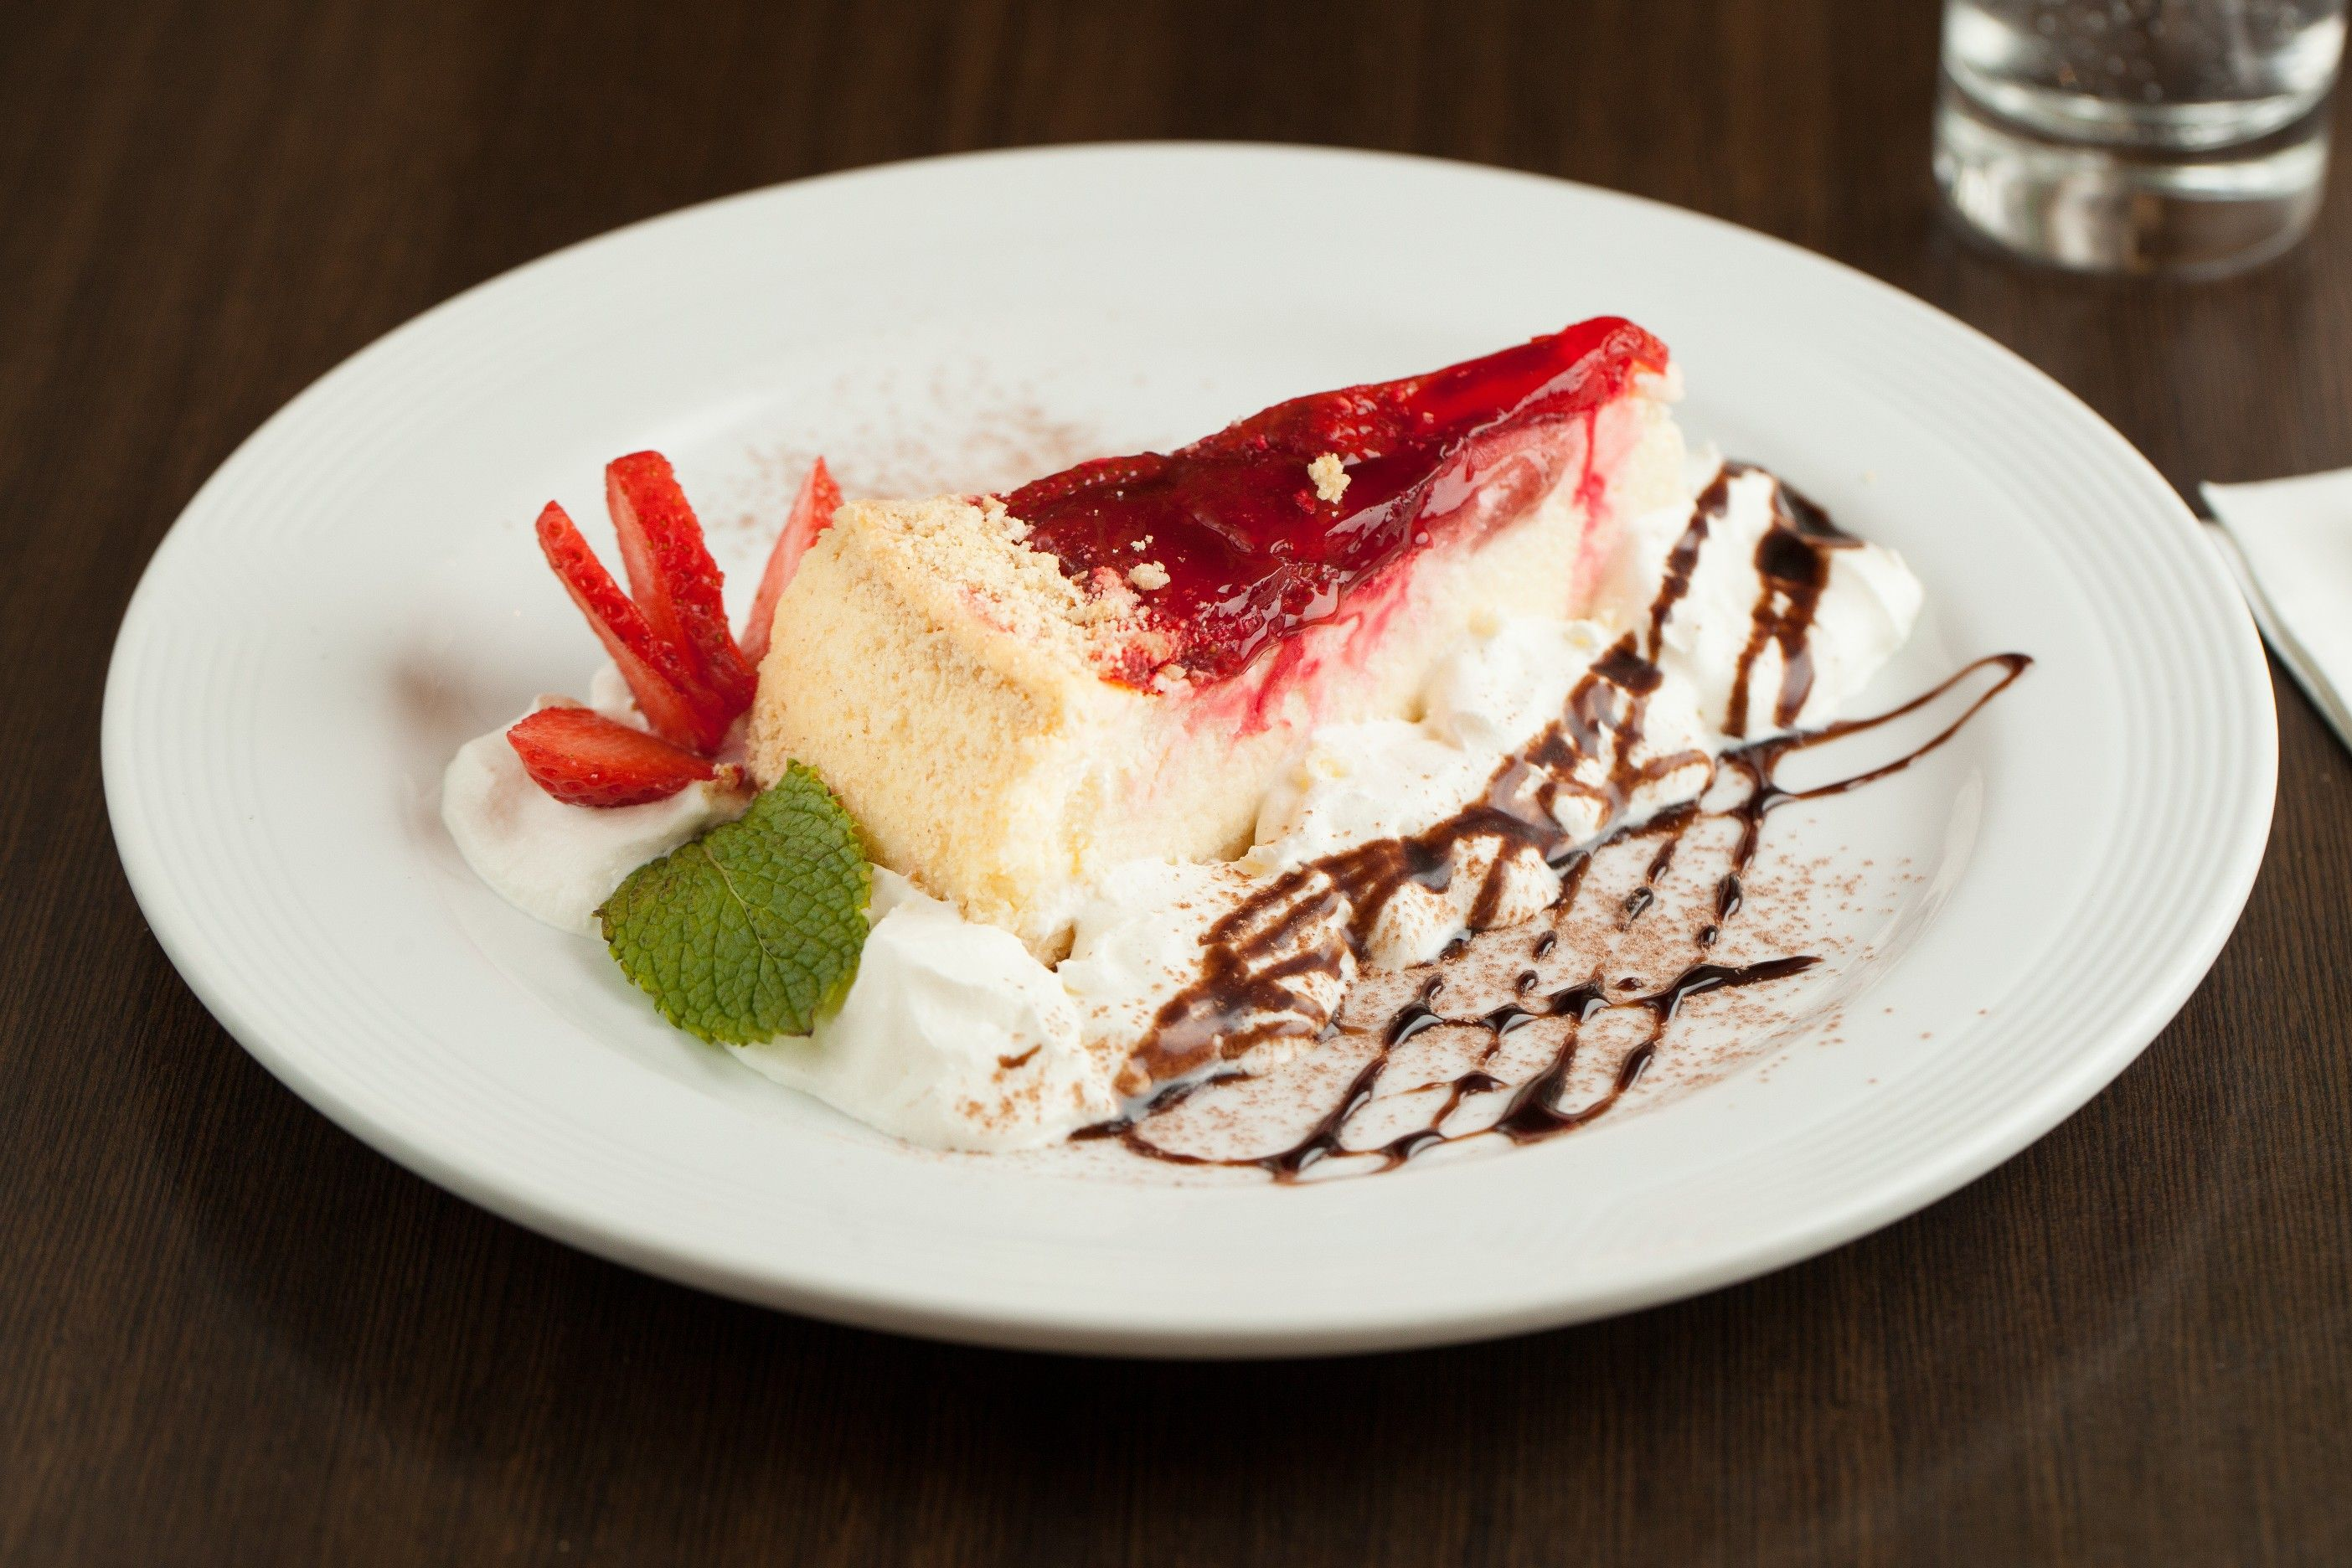 Dolci - Strawberry Cheesecake